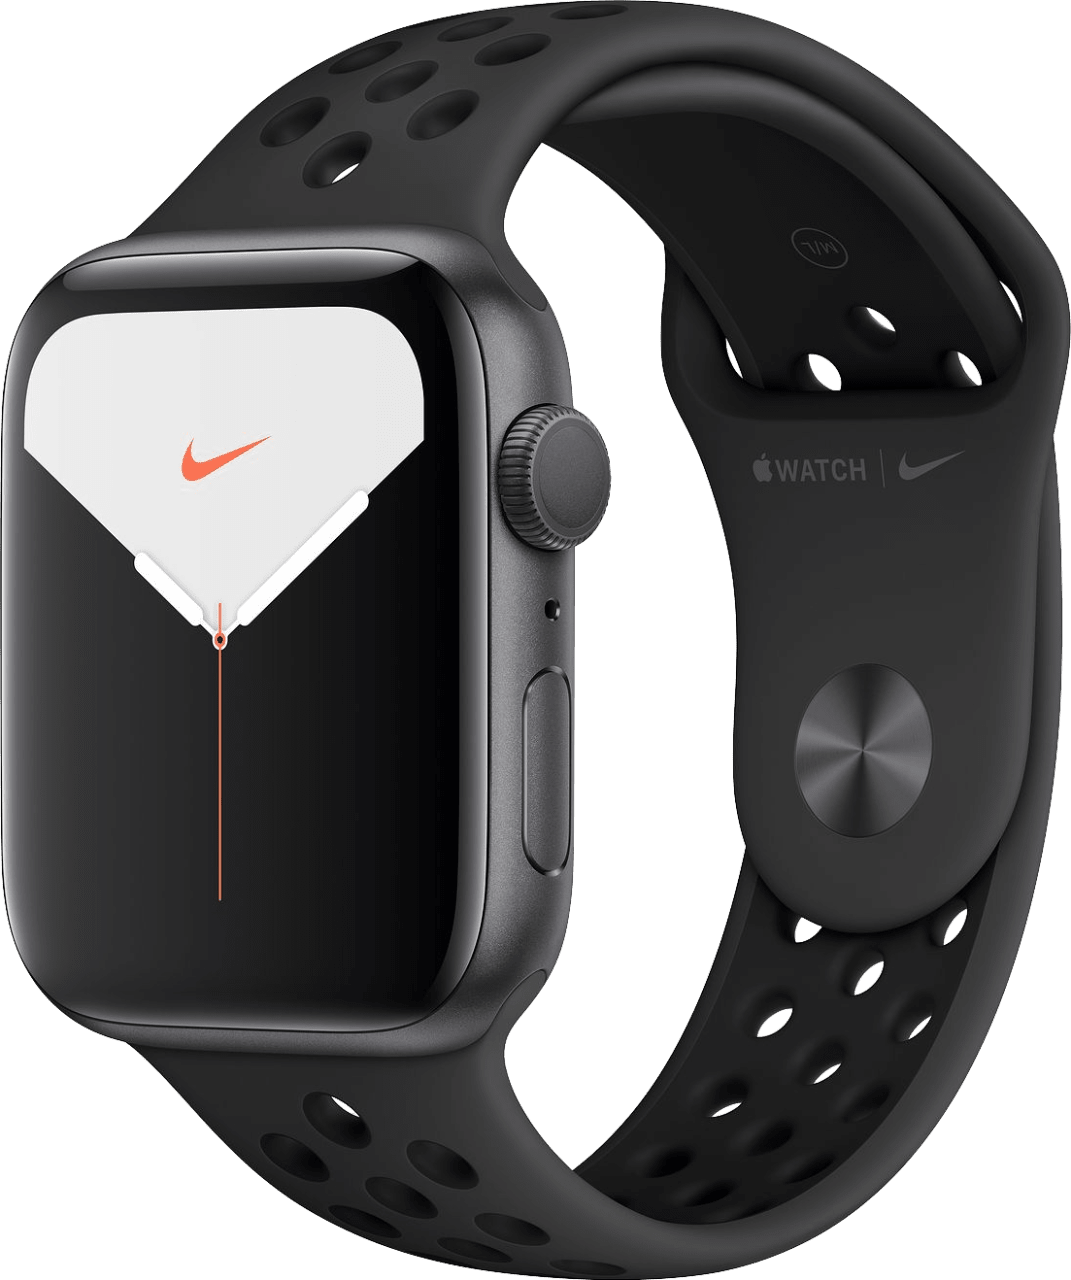 Anthracite / Schwarz Apple Watch Nike Series 5 GPS + Cellular, 44mm.2